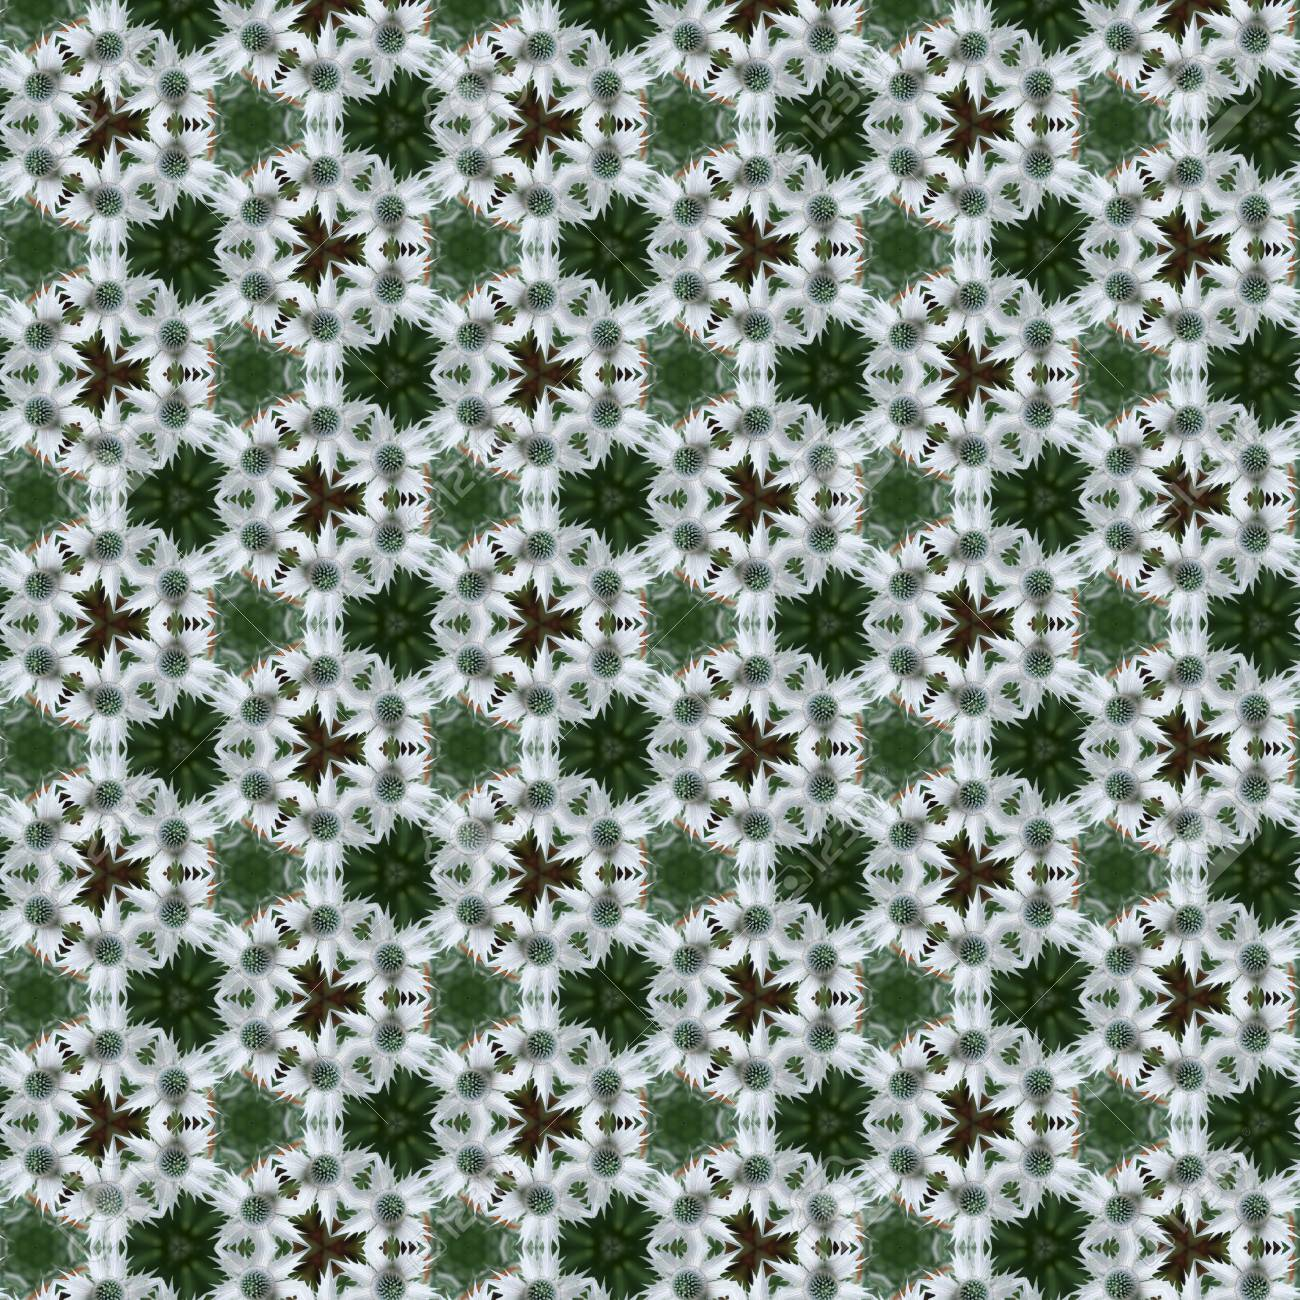 Green and white sea holly or eryngium spiky flowers in a tileabe green and white sea holly or eryngium spiky flowers in a tileabe seamless repeat pattern stock mightylinksfo